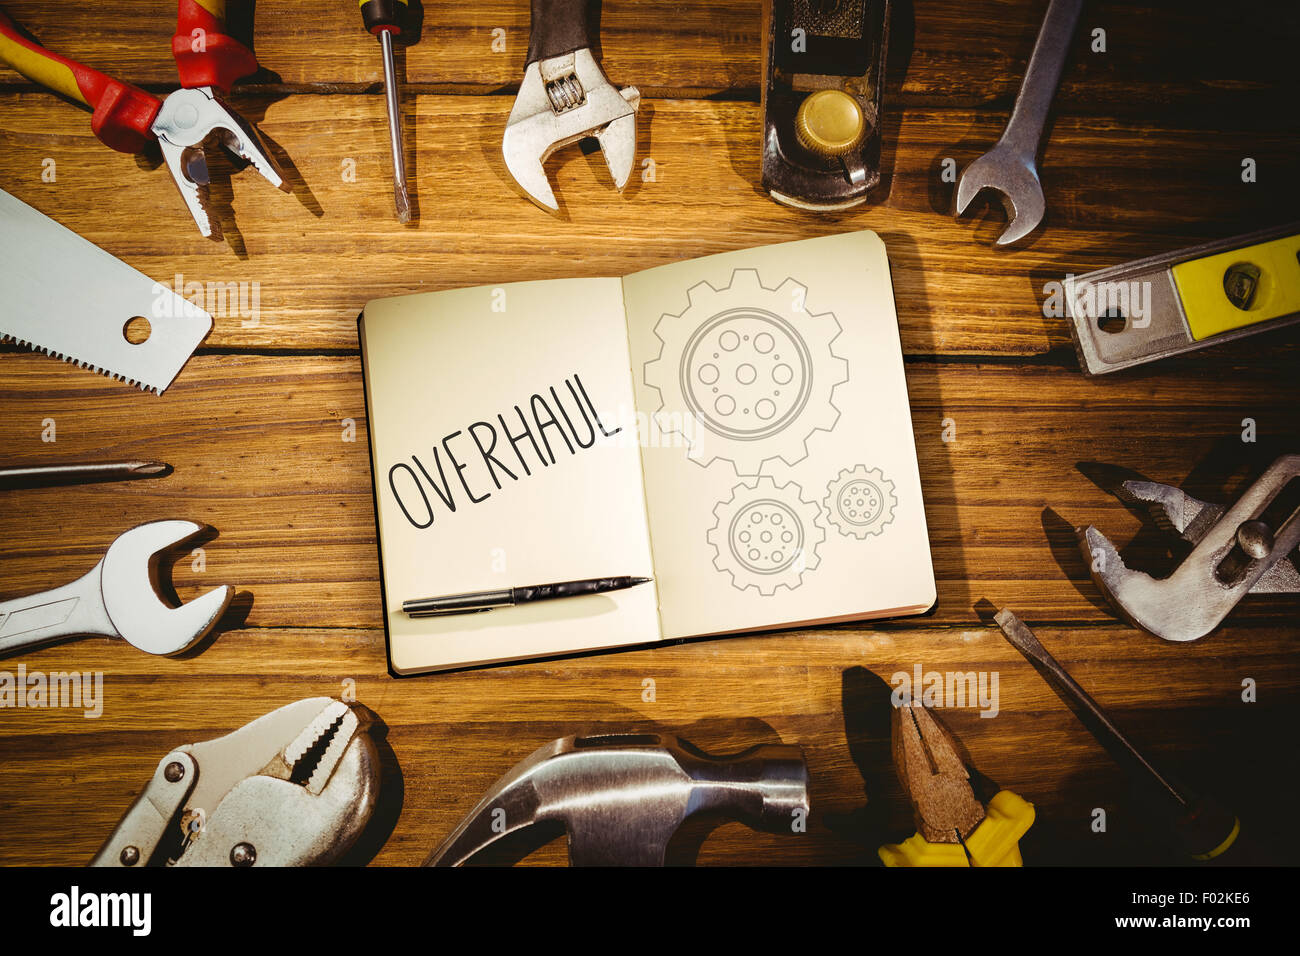 Overhaul against blueprint Stock Photo